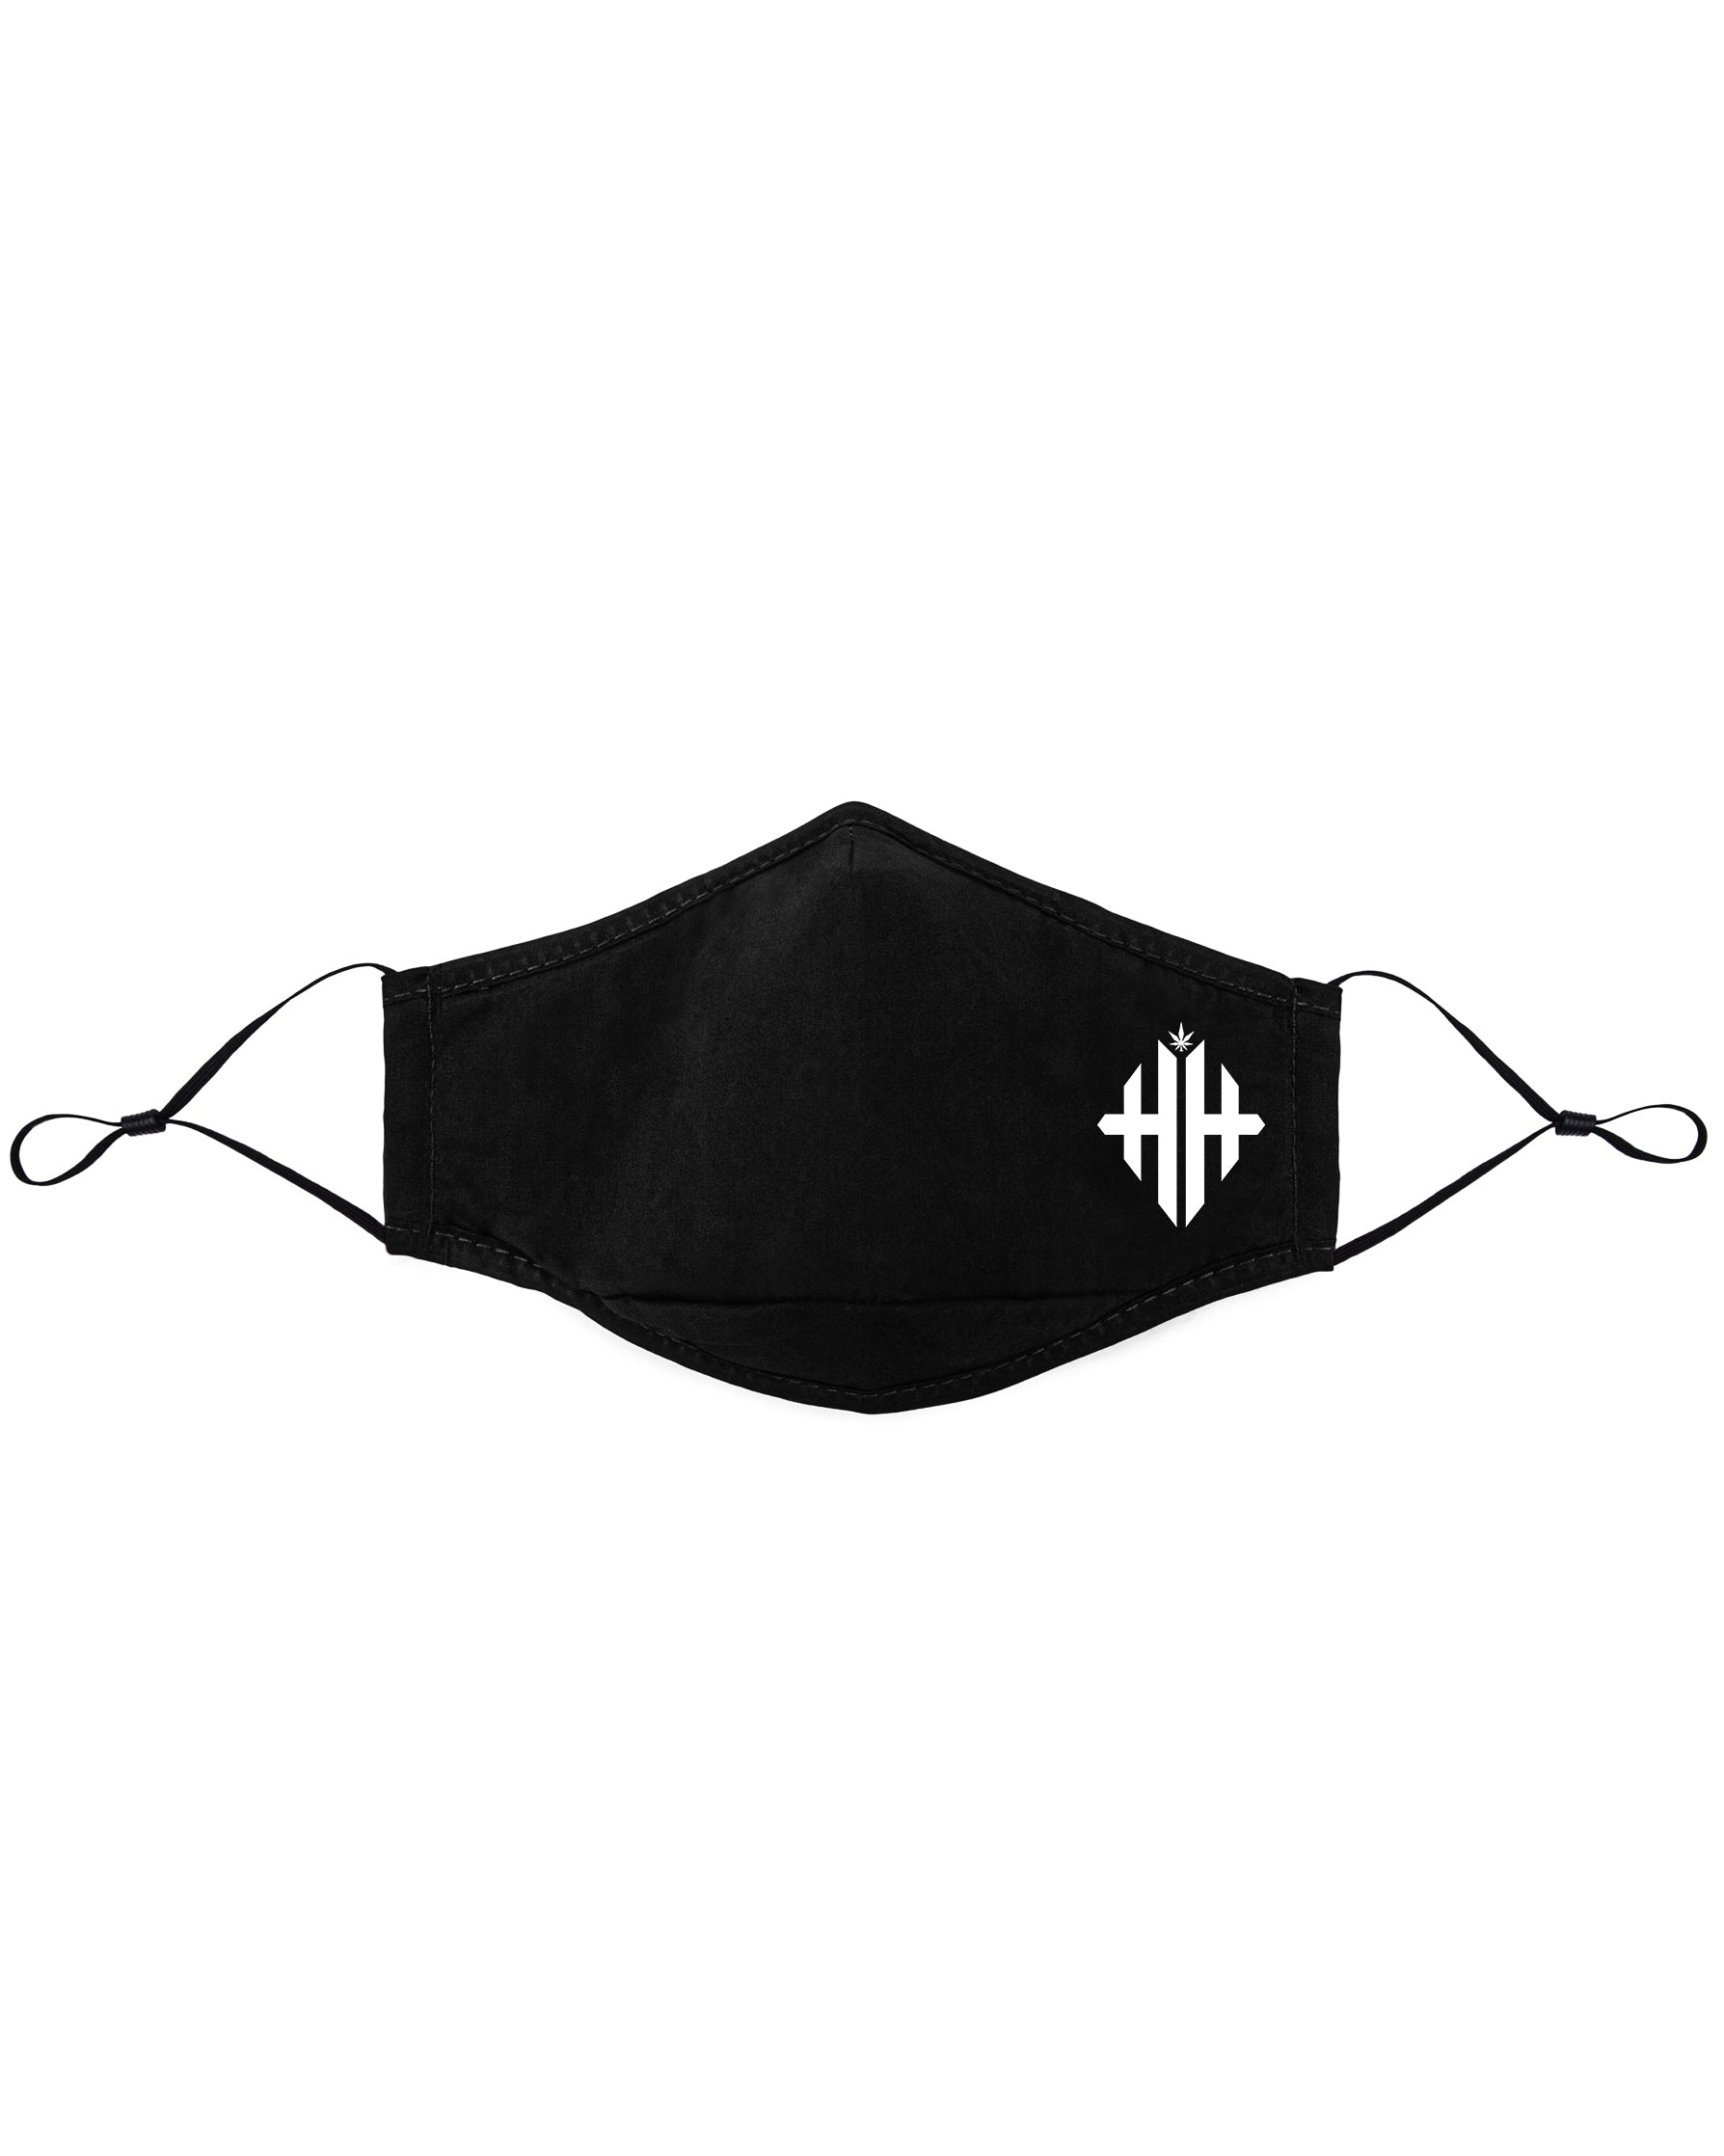 Herbman Hustlin Monogram 3 Layer Mask - Black/White